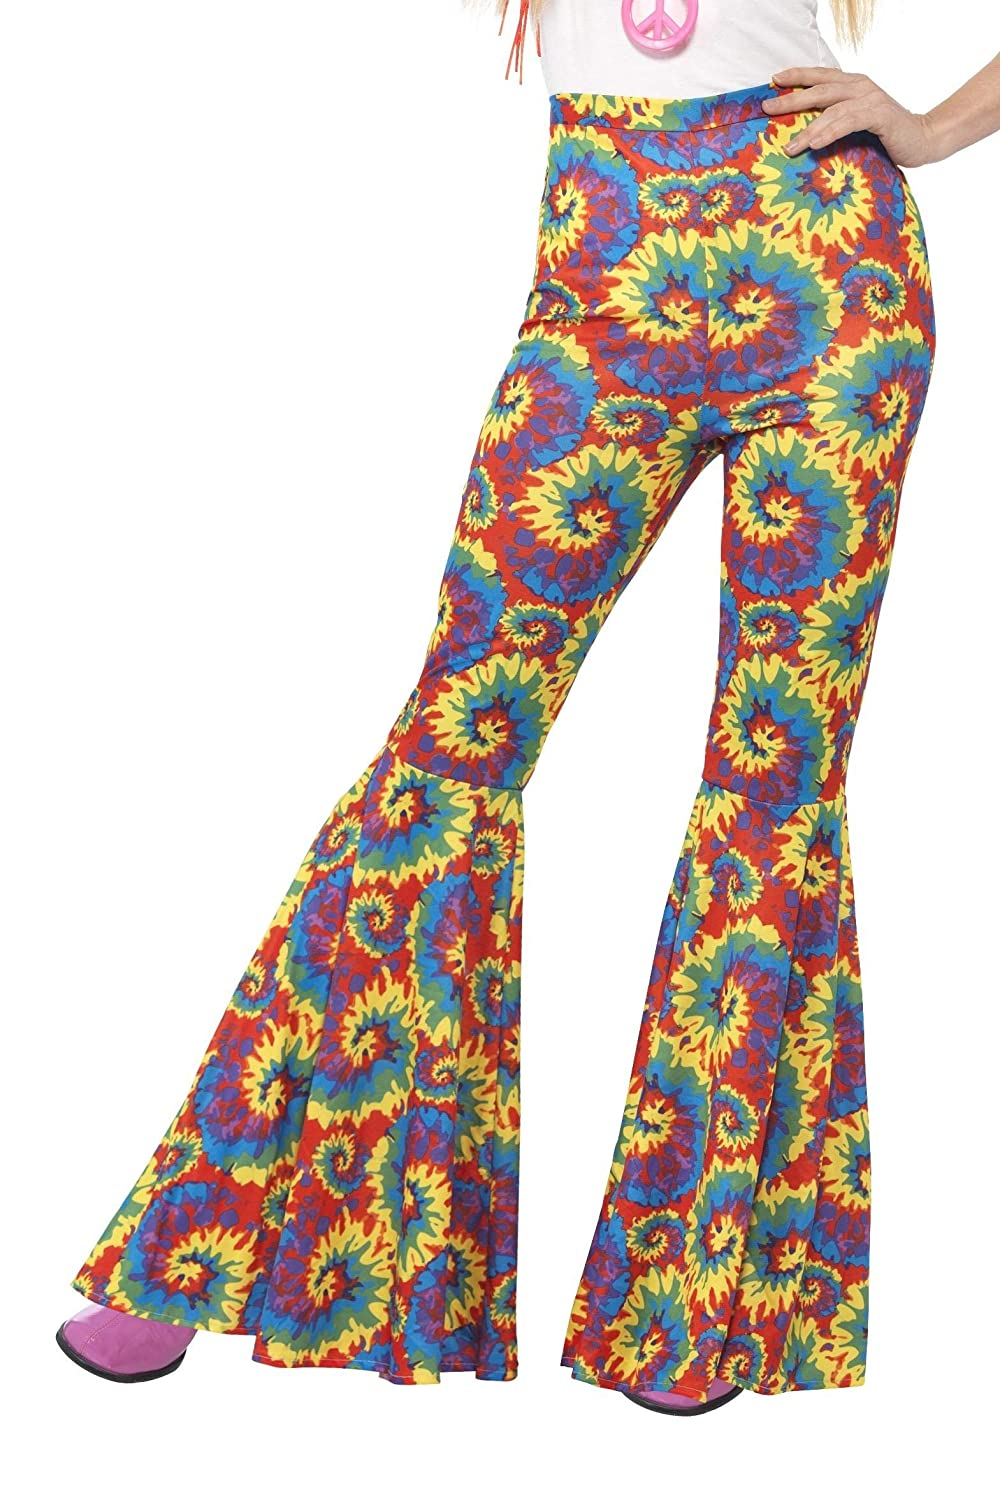 Hippie Pants, Jeans, Bell Bottoms, Palazzo, Yoga Adults Womens 70s Flared Groovy Tie Dye Disco Pants Costume $26.97 AT vintagedancer.com